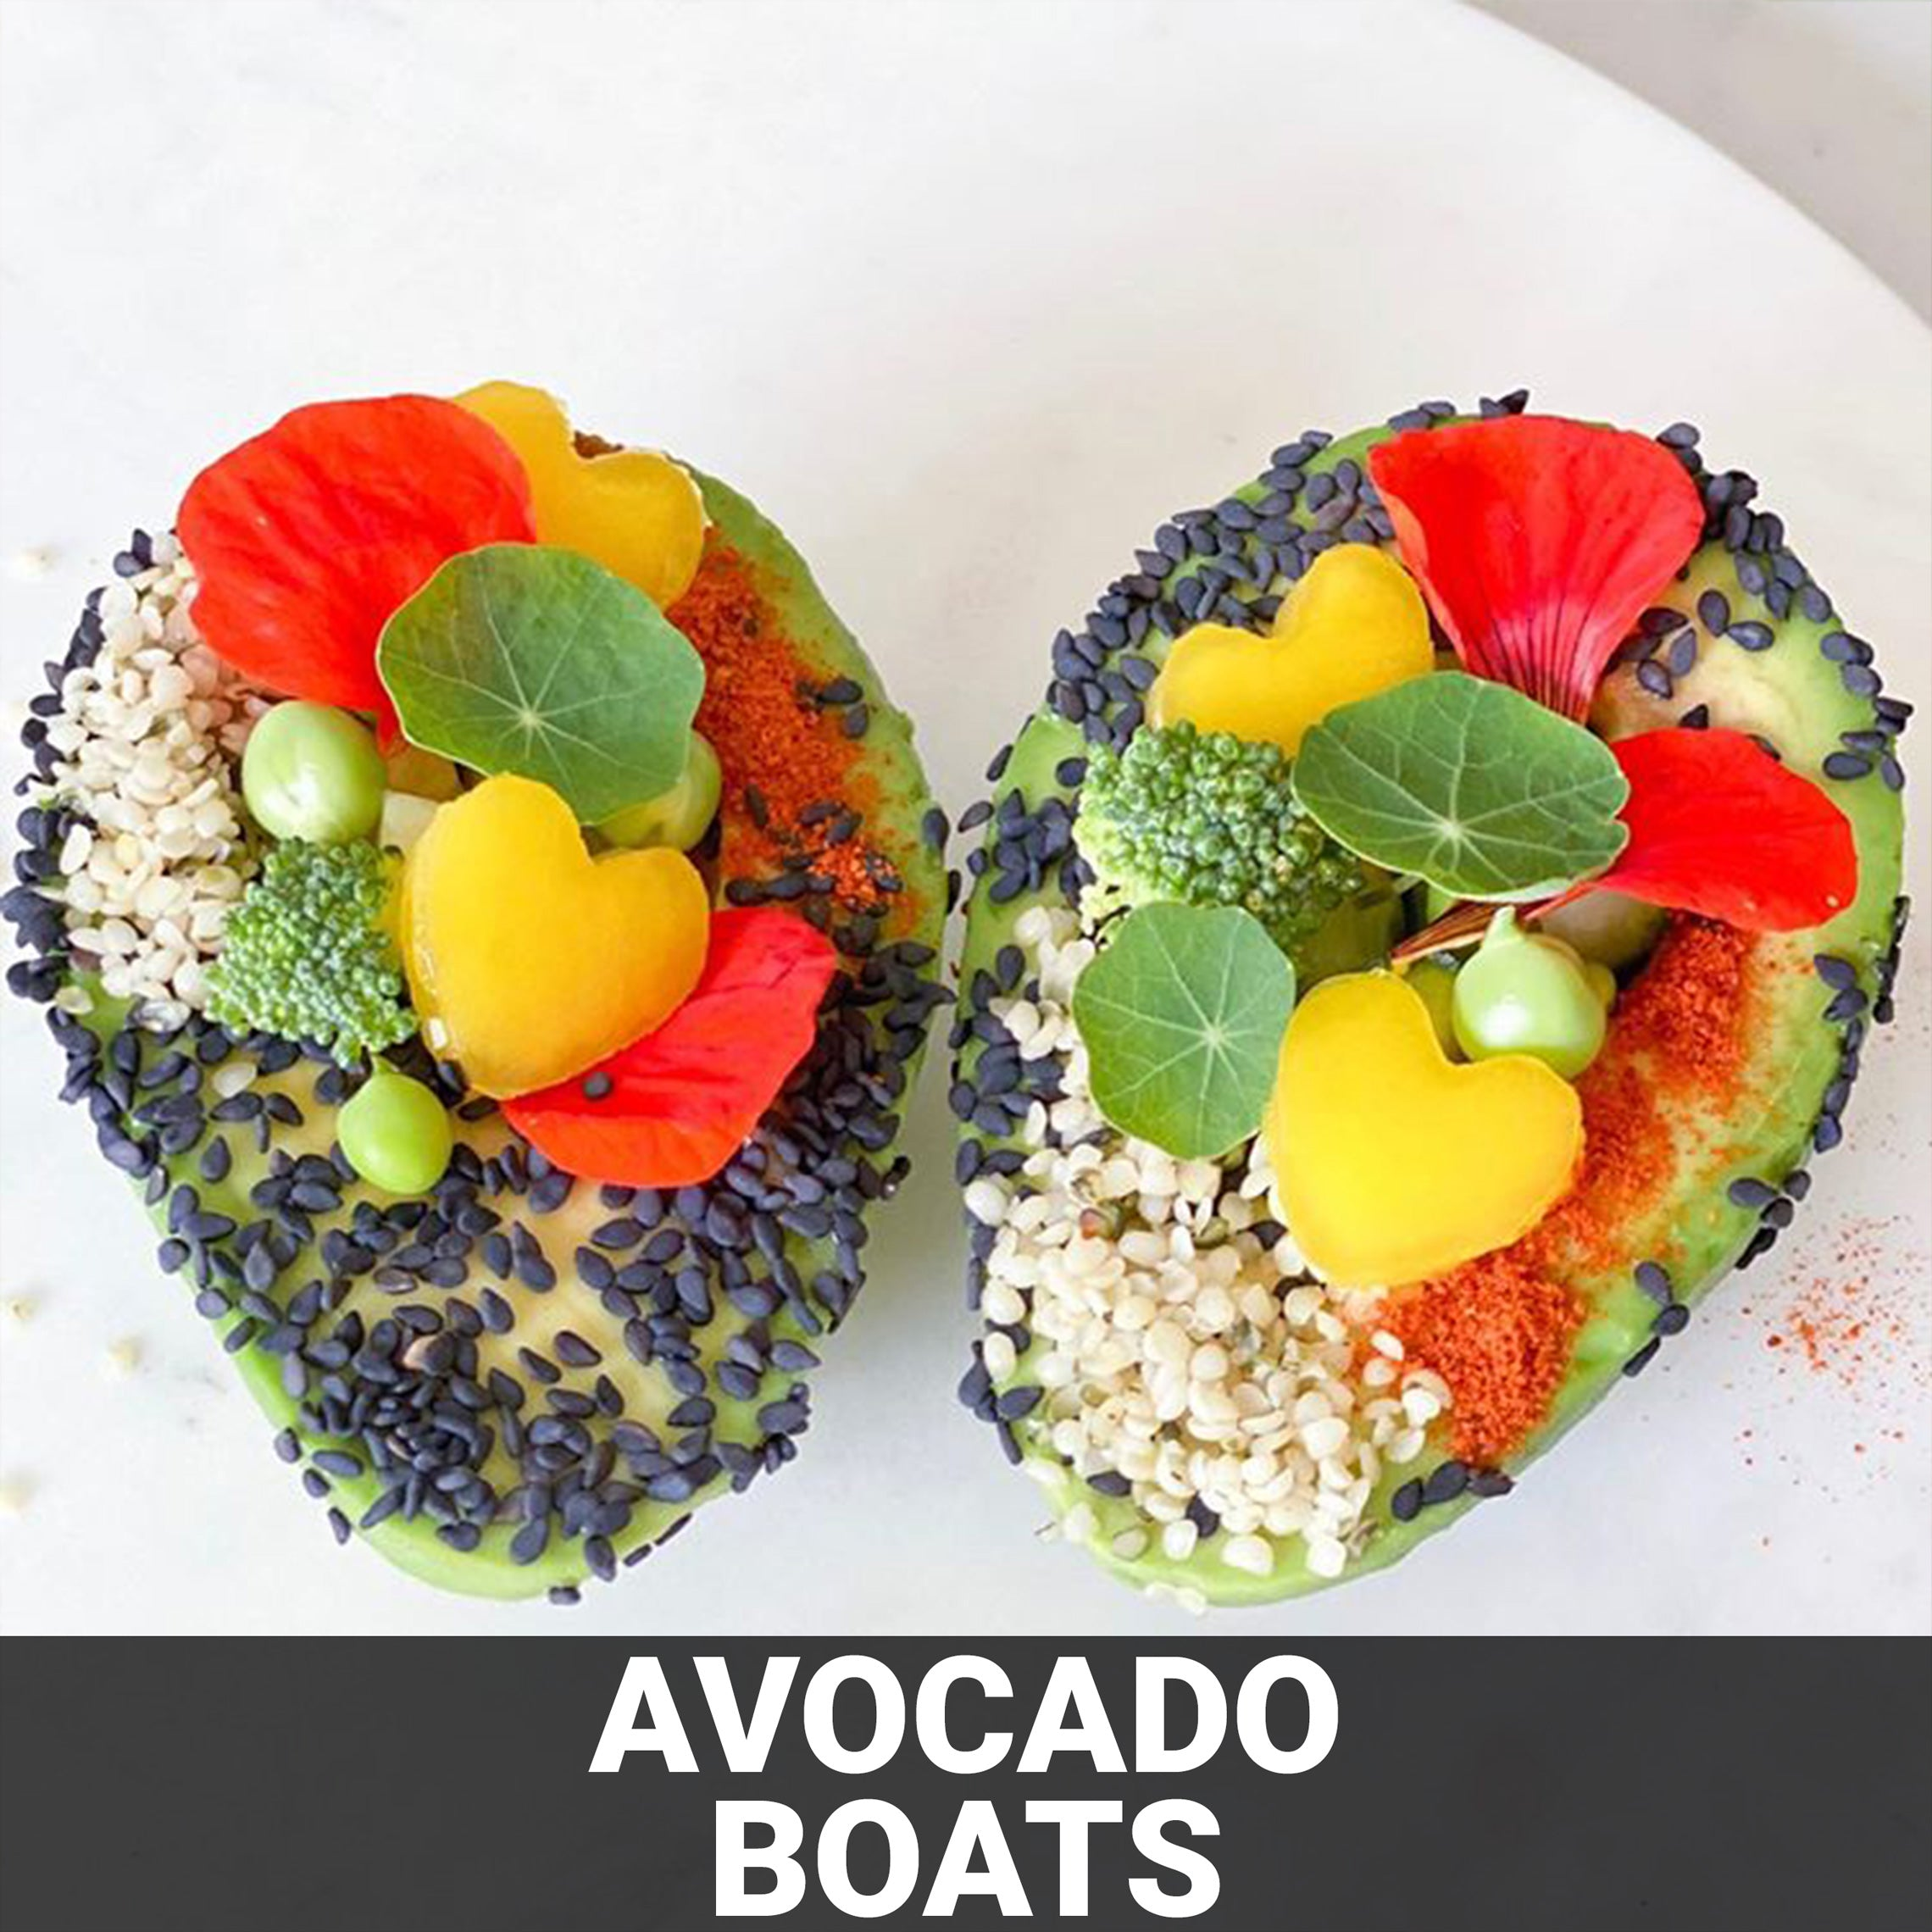 Avocado Boats Recipe - Foods Alive